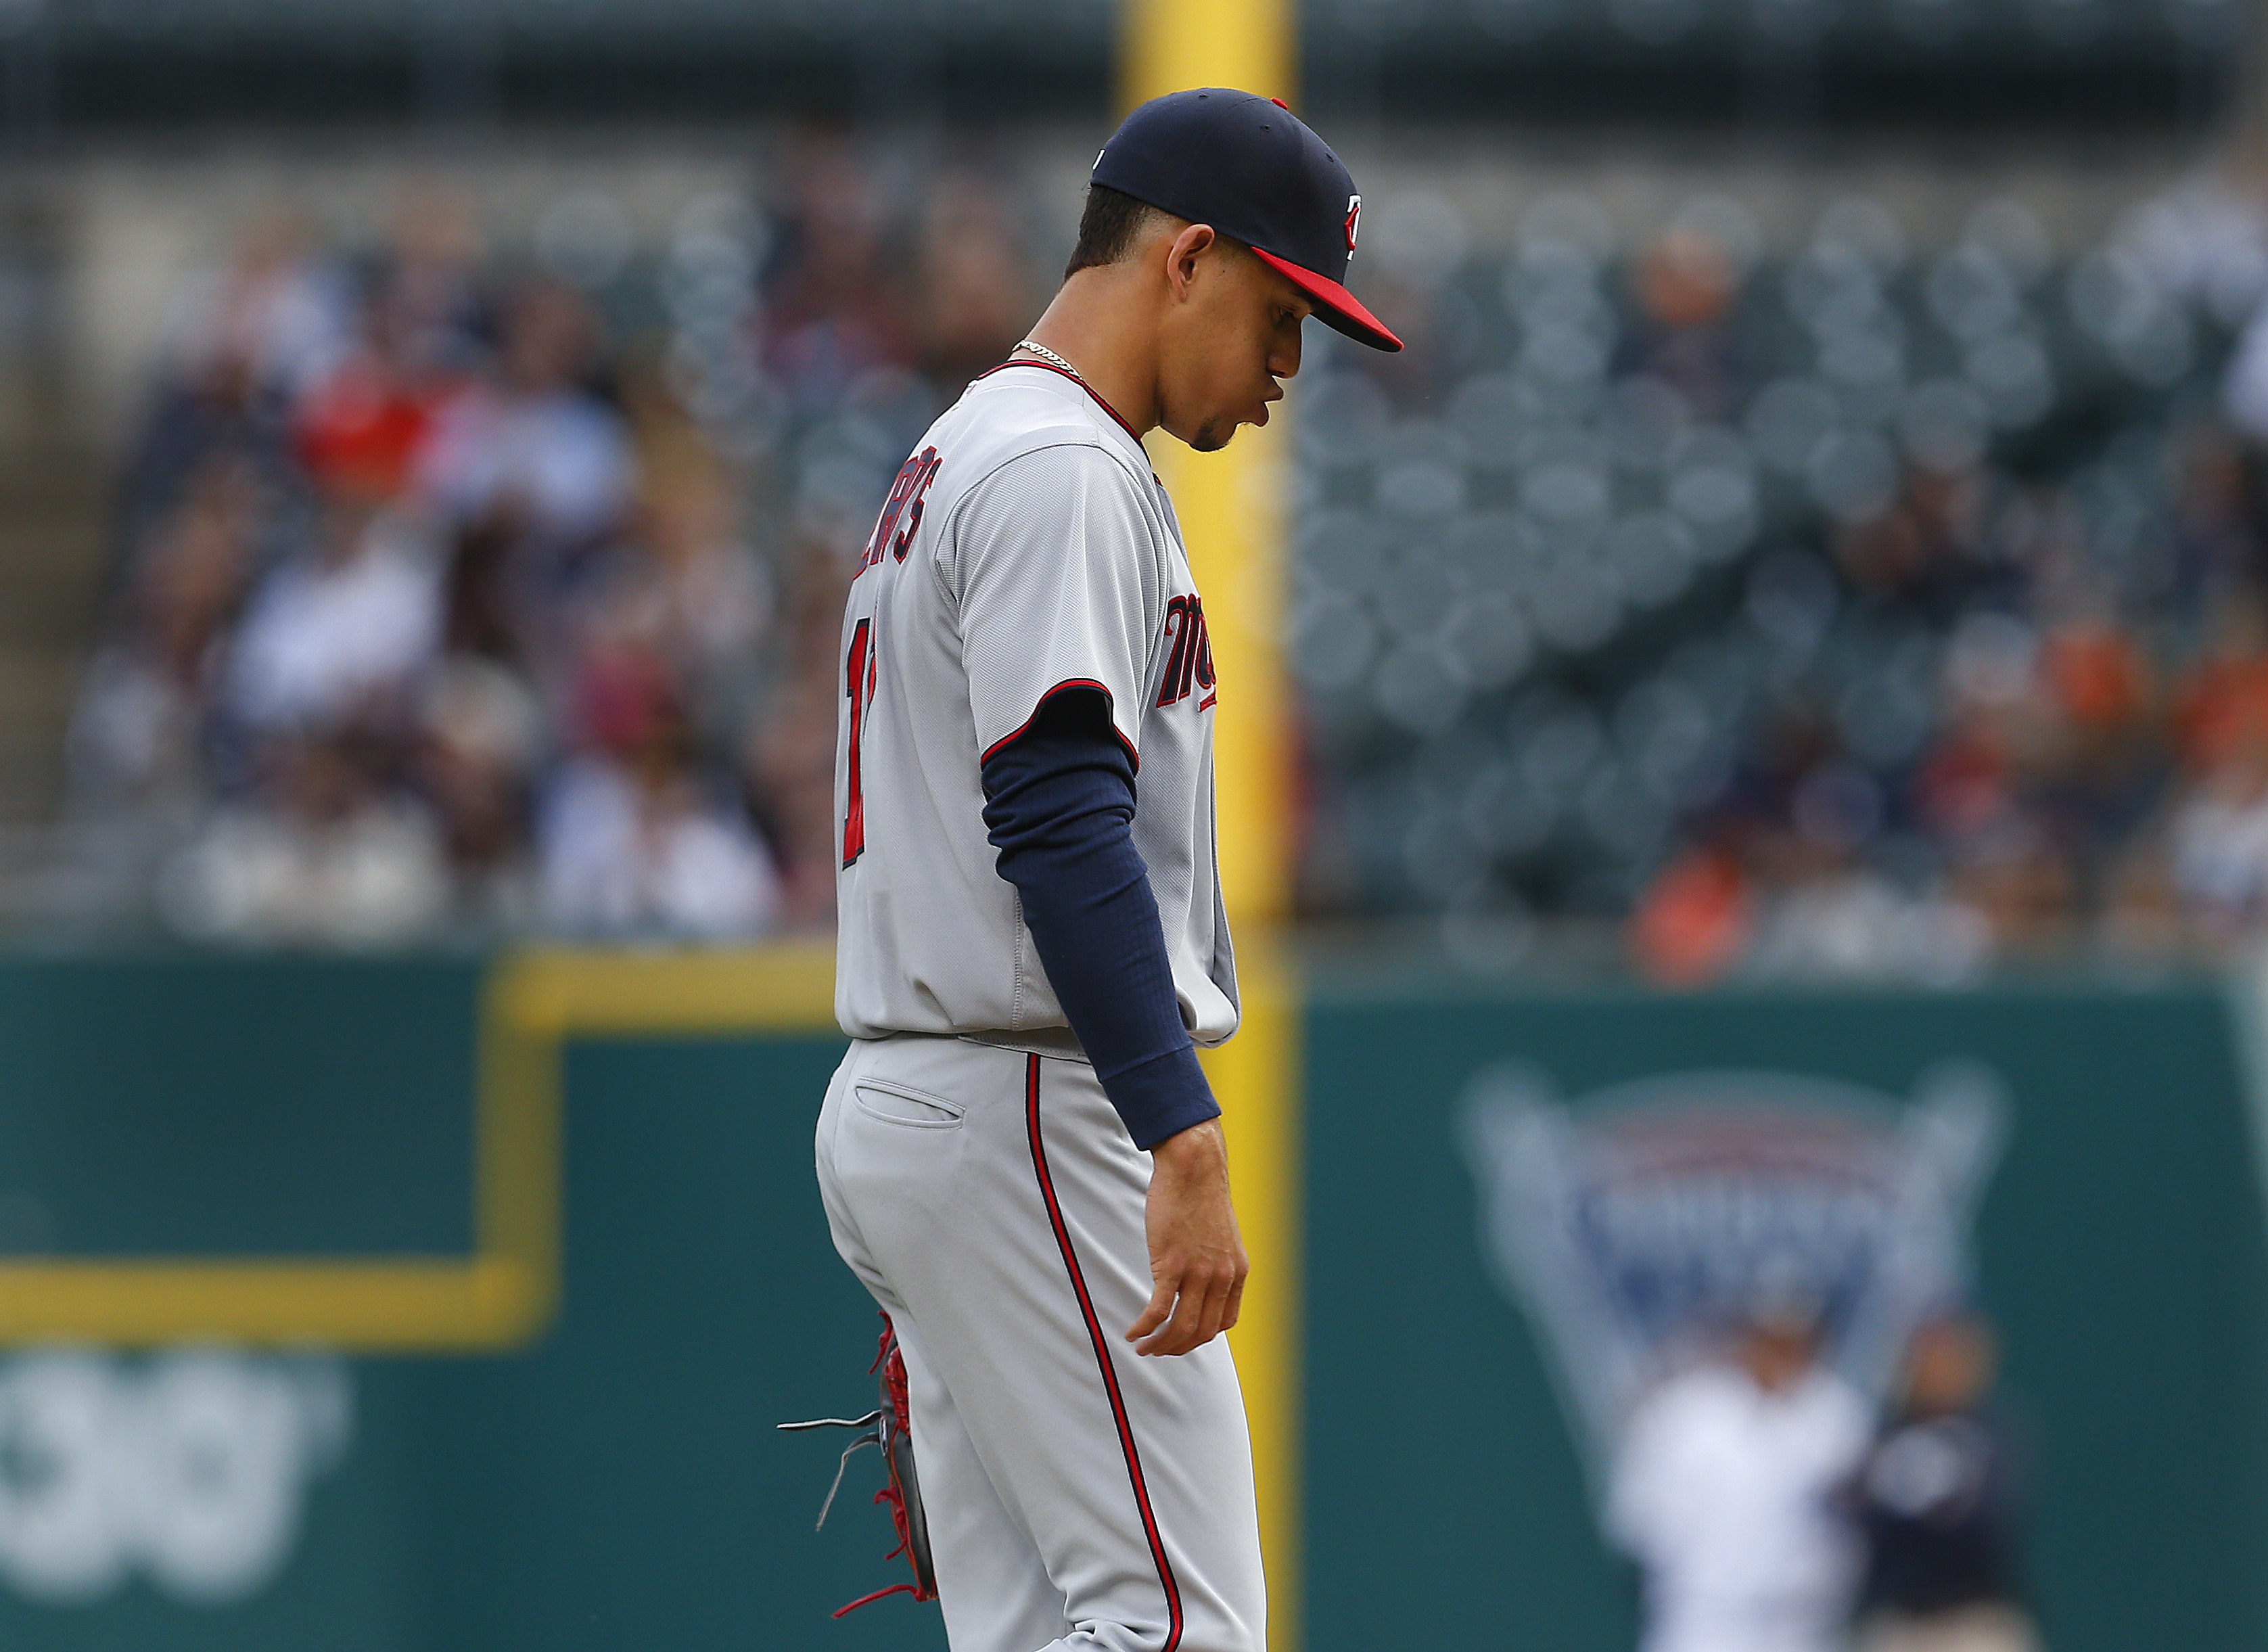 Minnesota Twins pitcher Jose Berrios leaves the field after being relieved against the Detroit Tigers in the first inning of a baseball game, Monday, May 16, 2016 in Detroit. (AP Photo/Paul Sancya)